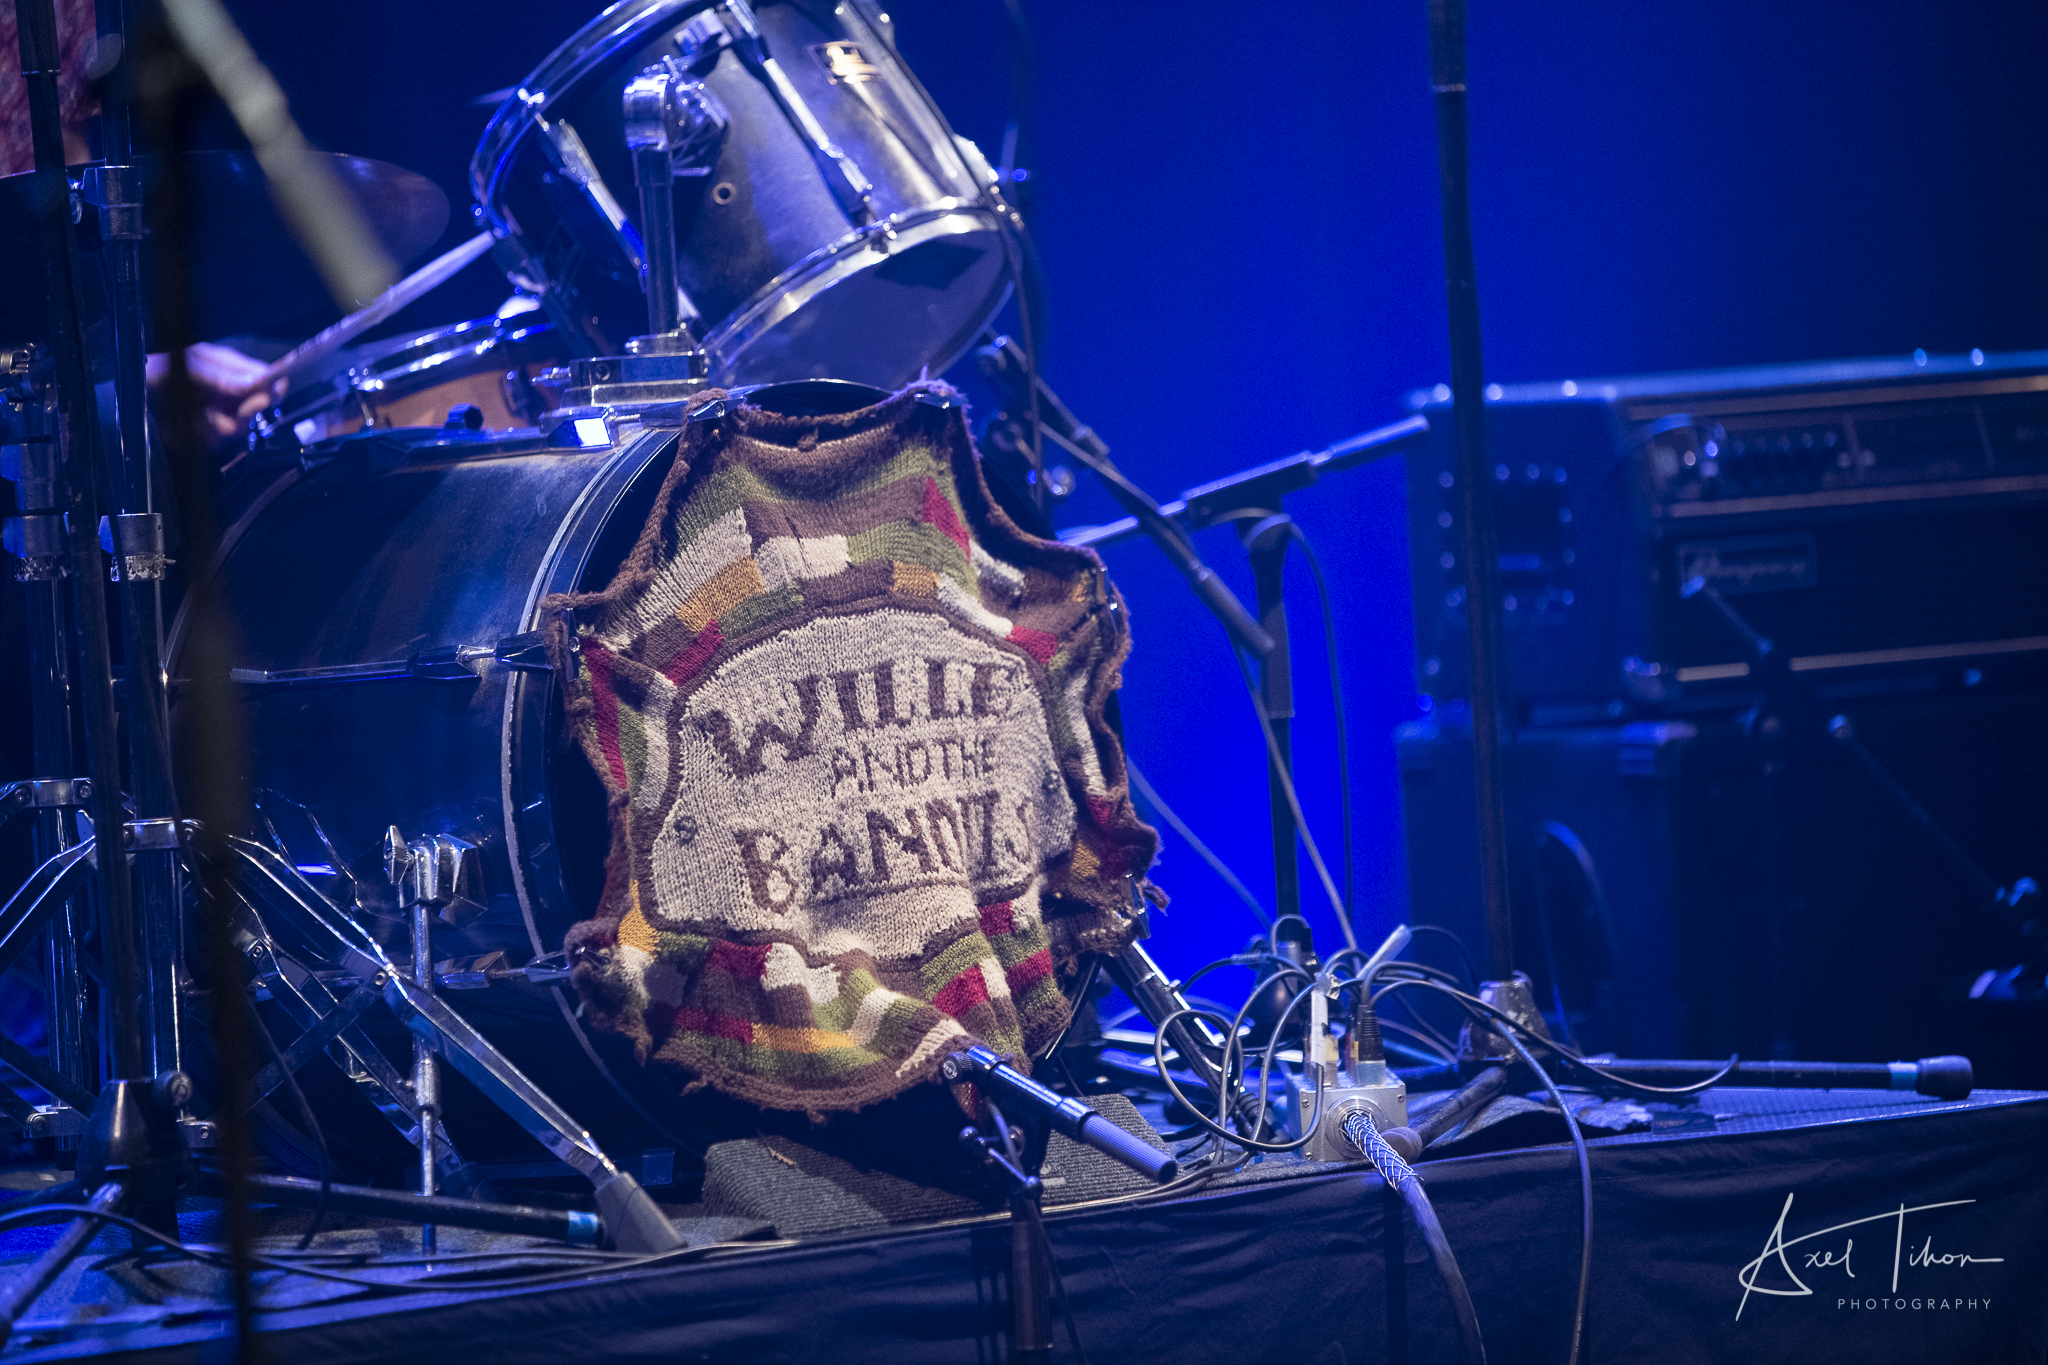 Wille and the Bandits-20